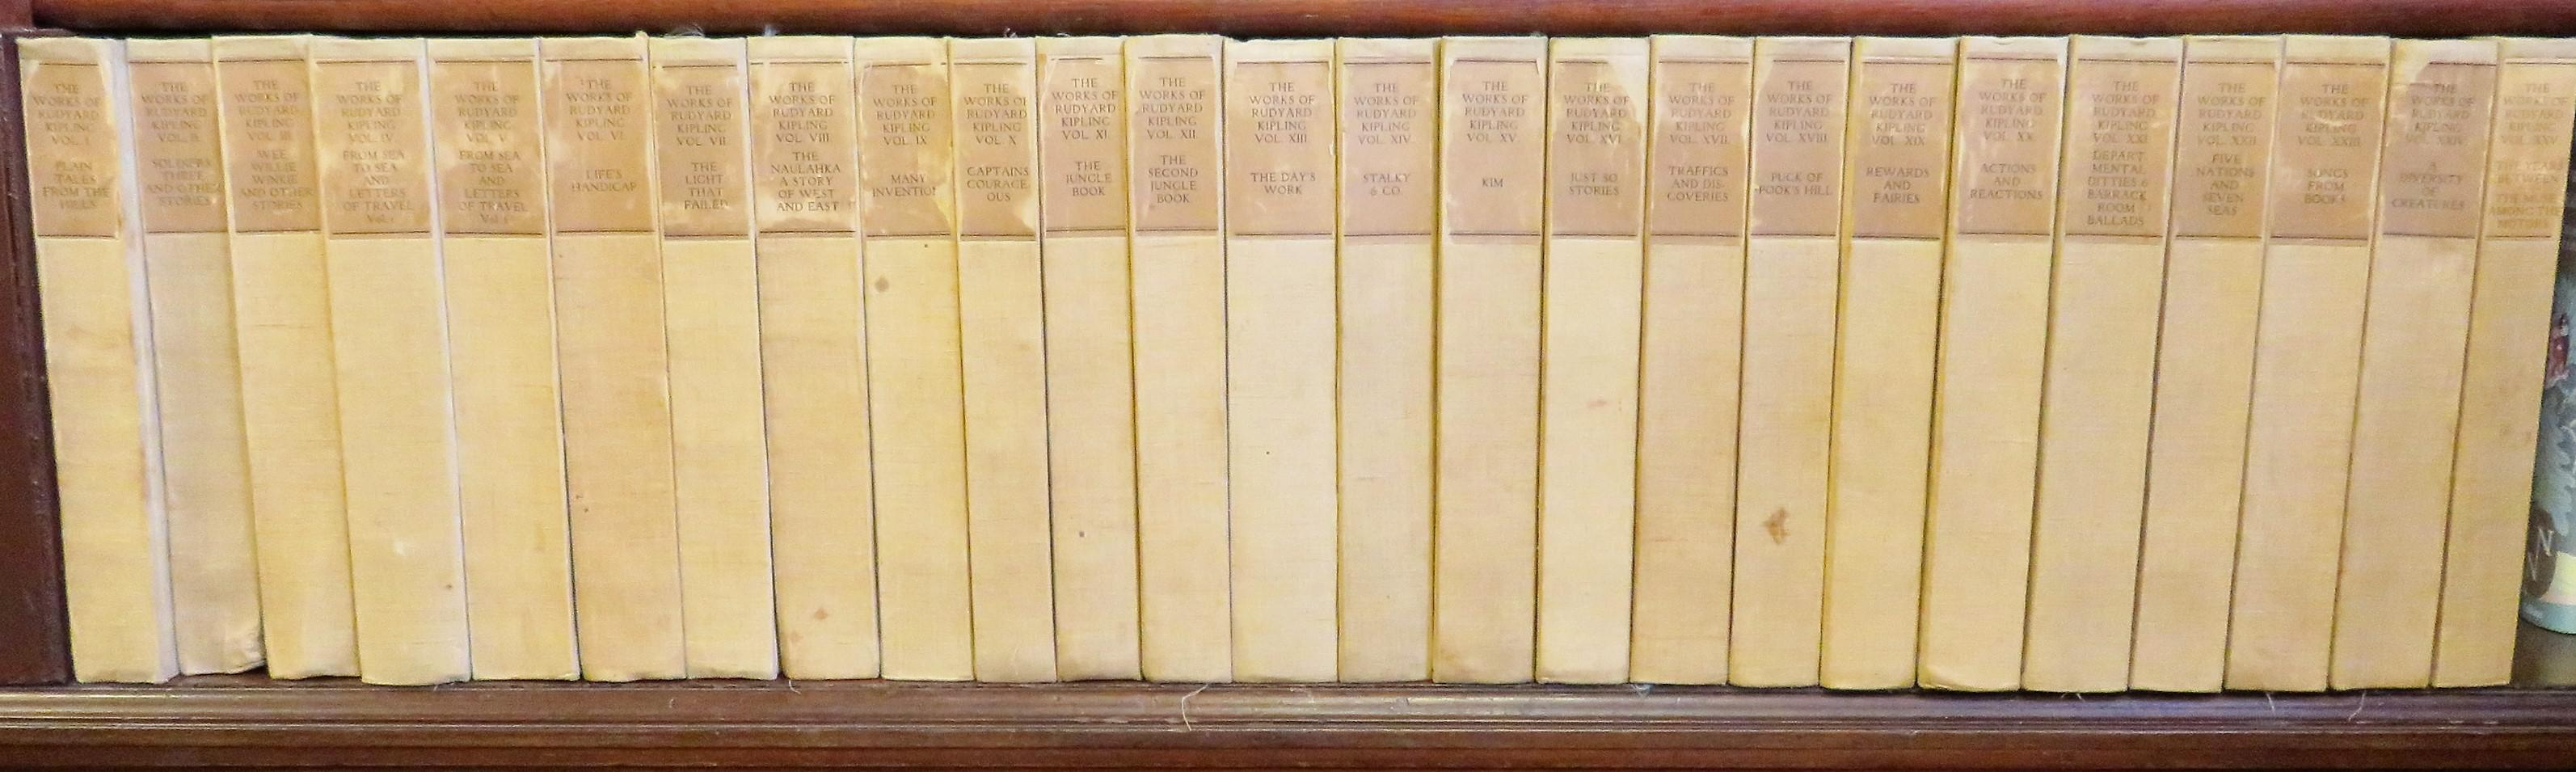 The Bombay Edition of the Works of Rudyard Kipling SIGNED In 25 Volumes Complete